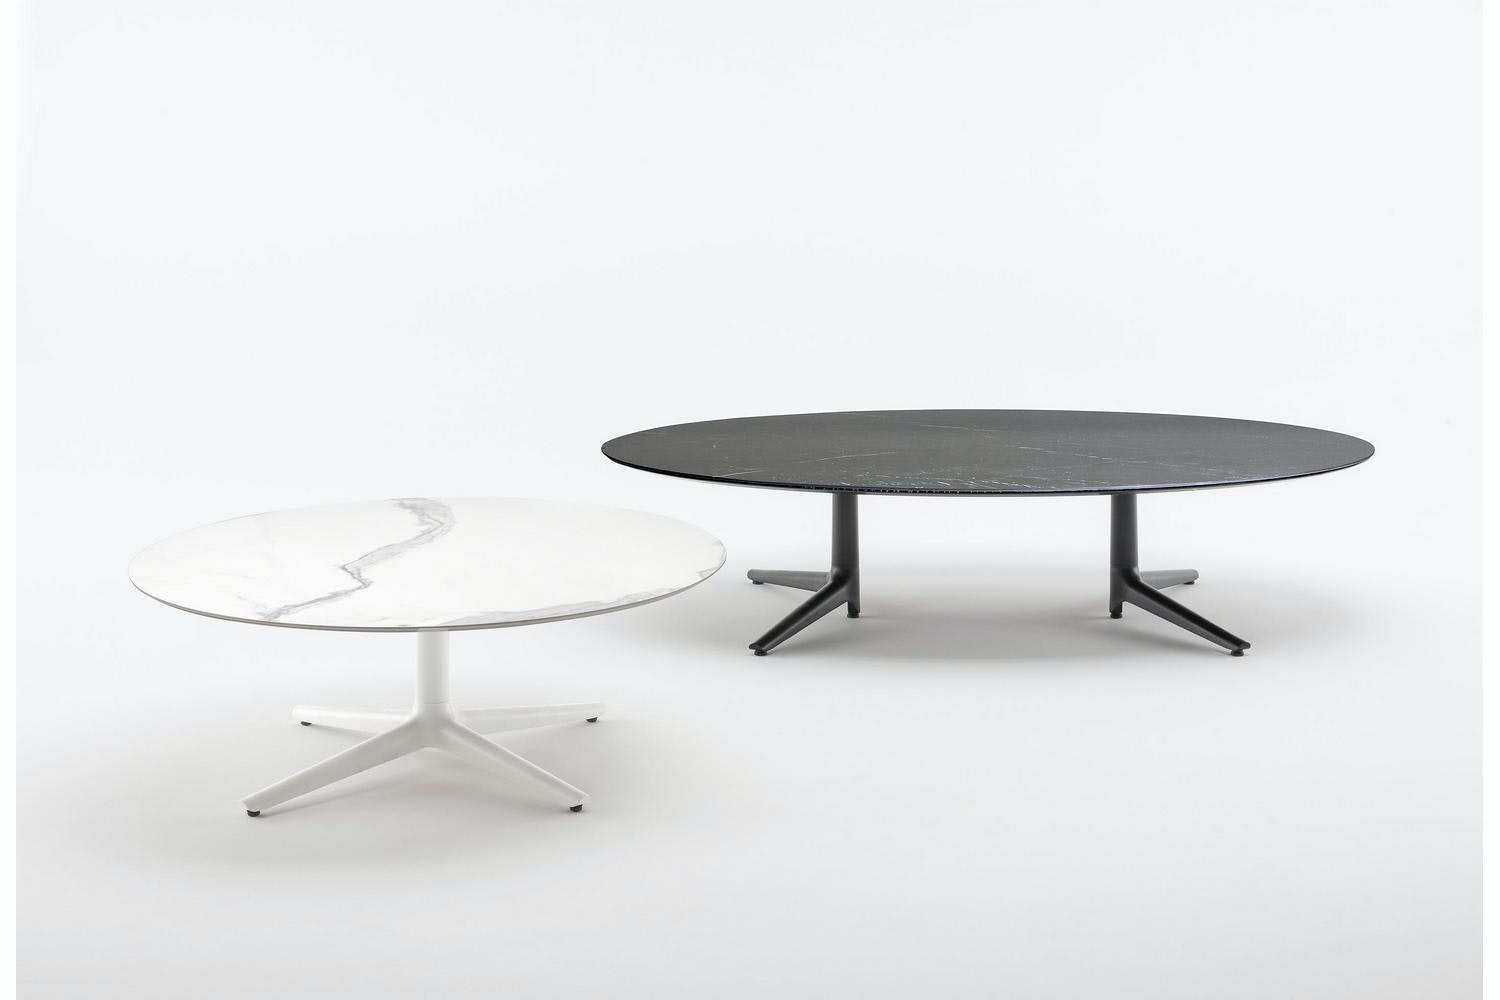 Multiplo LOW Coffee Table by Antonio Citterio for Kartell